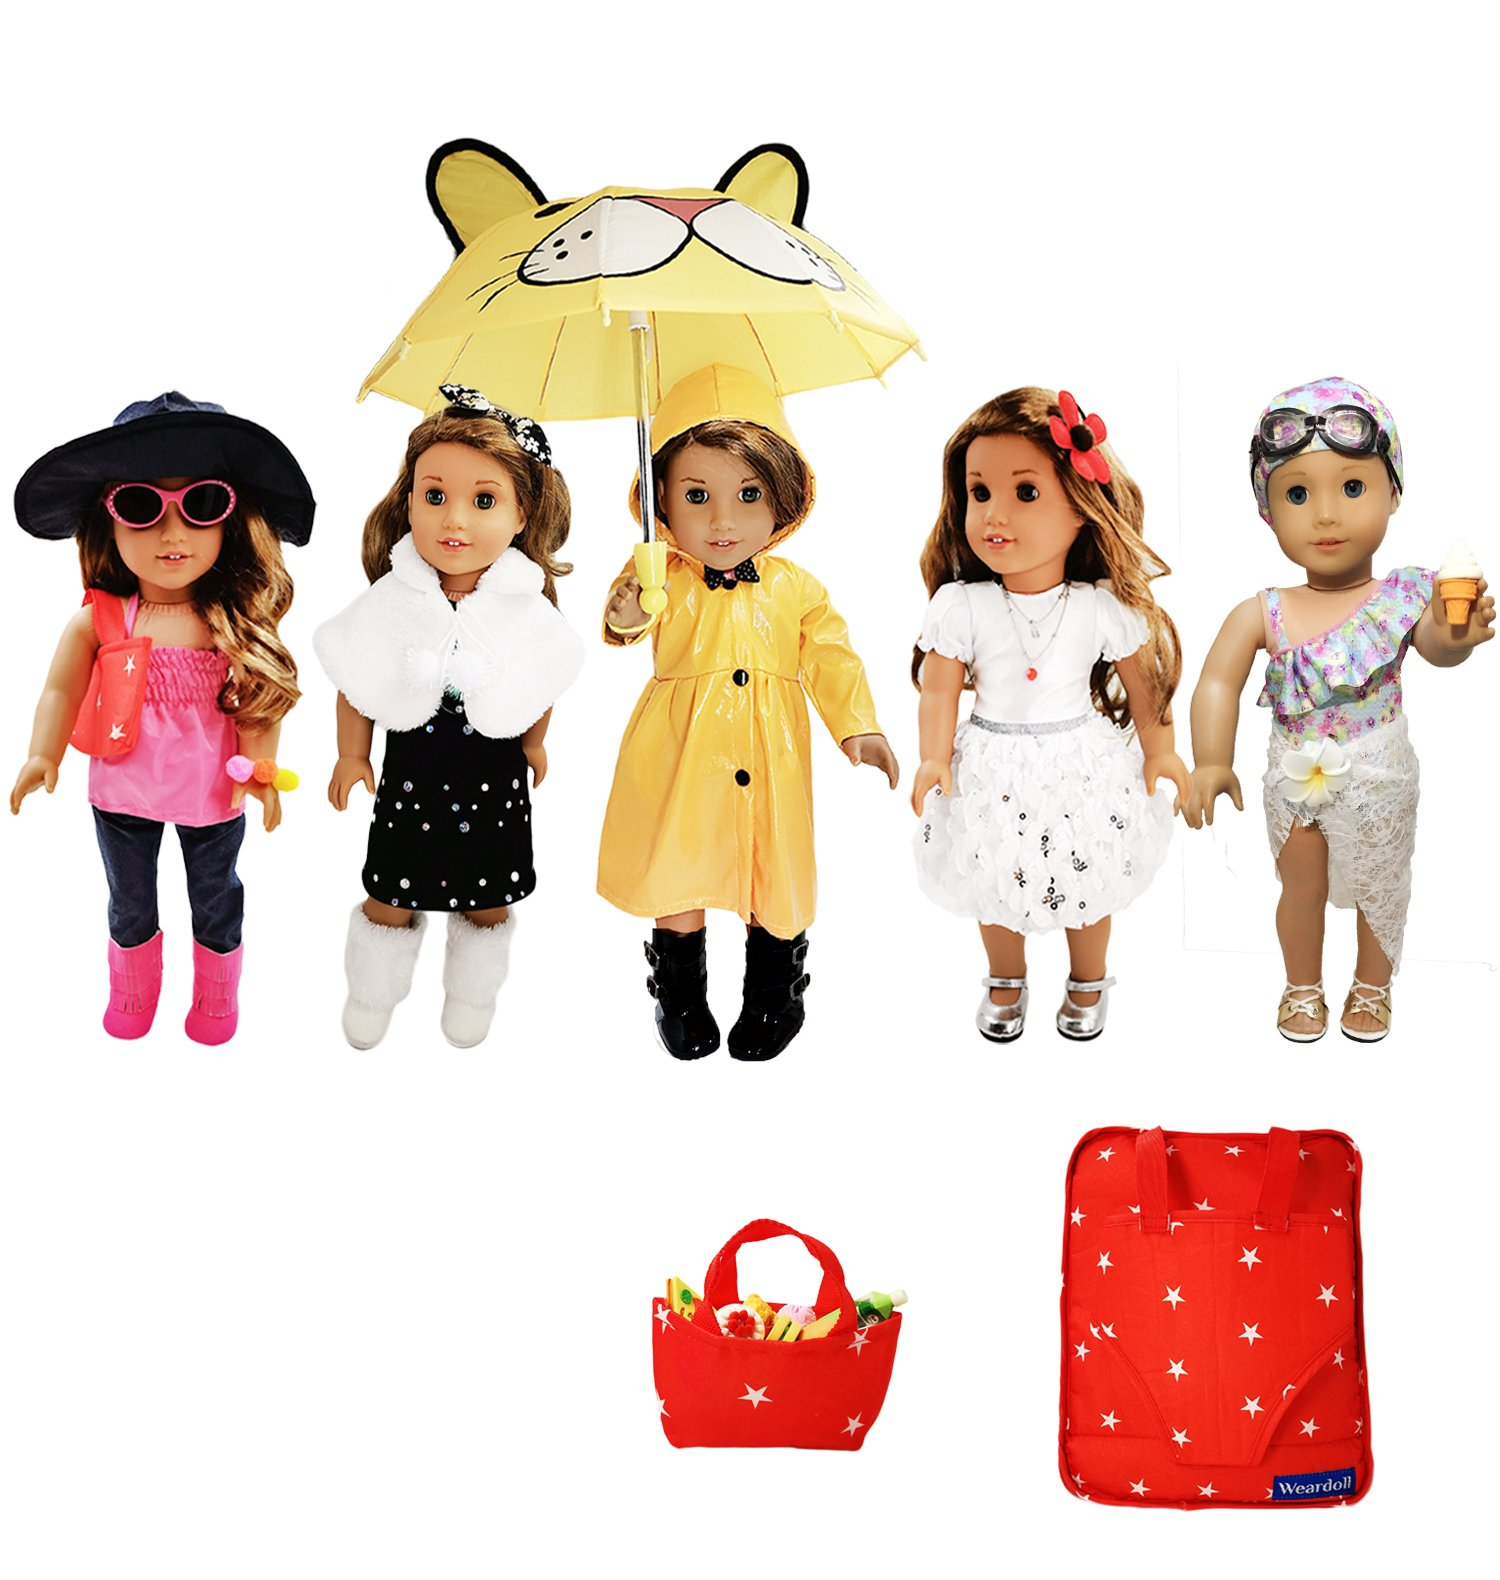 Weardoll 18inch Doll Clothes and Accessories - 33 Items, 18 inch Doll Accessories fits American Girl Doll Accessories, Mylife Doll Accessories by Weardoll